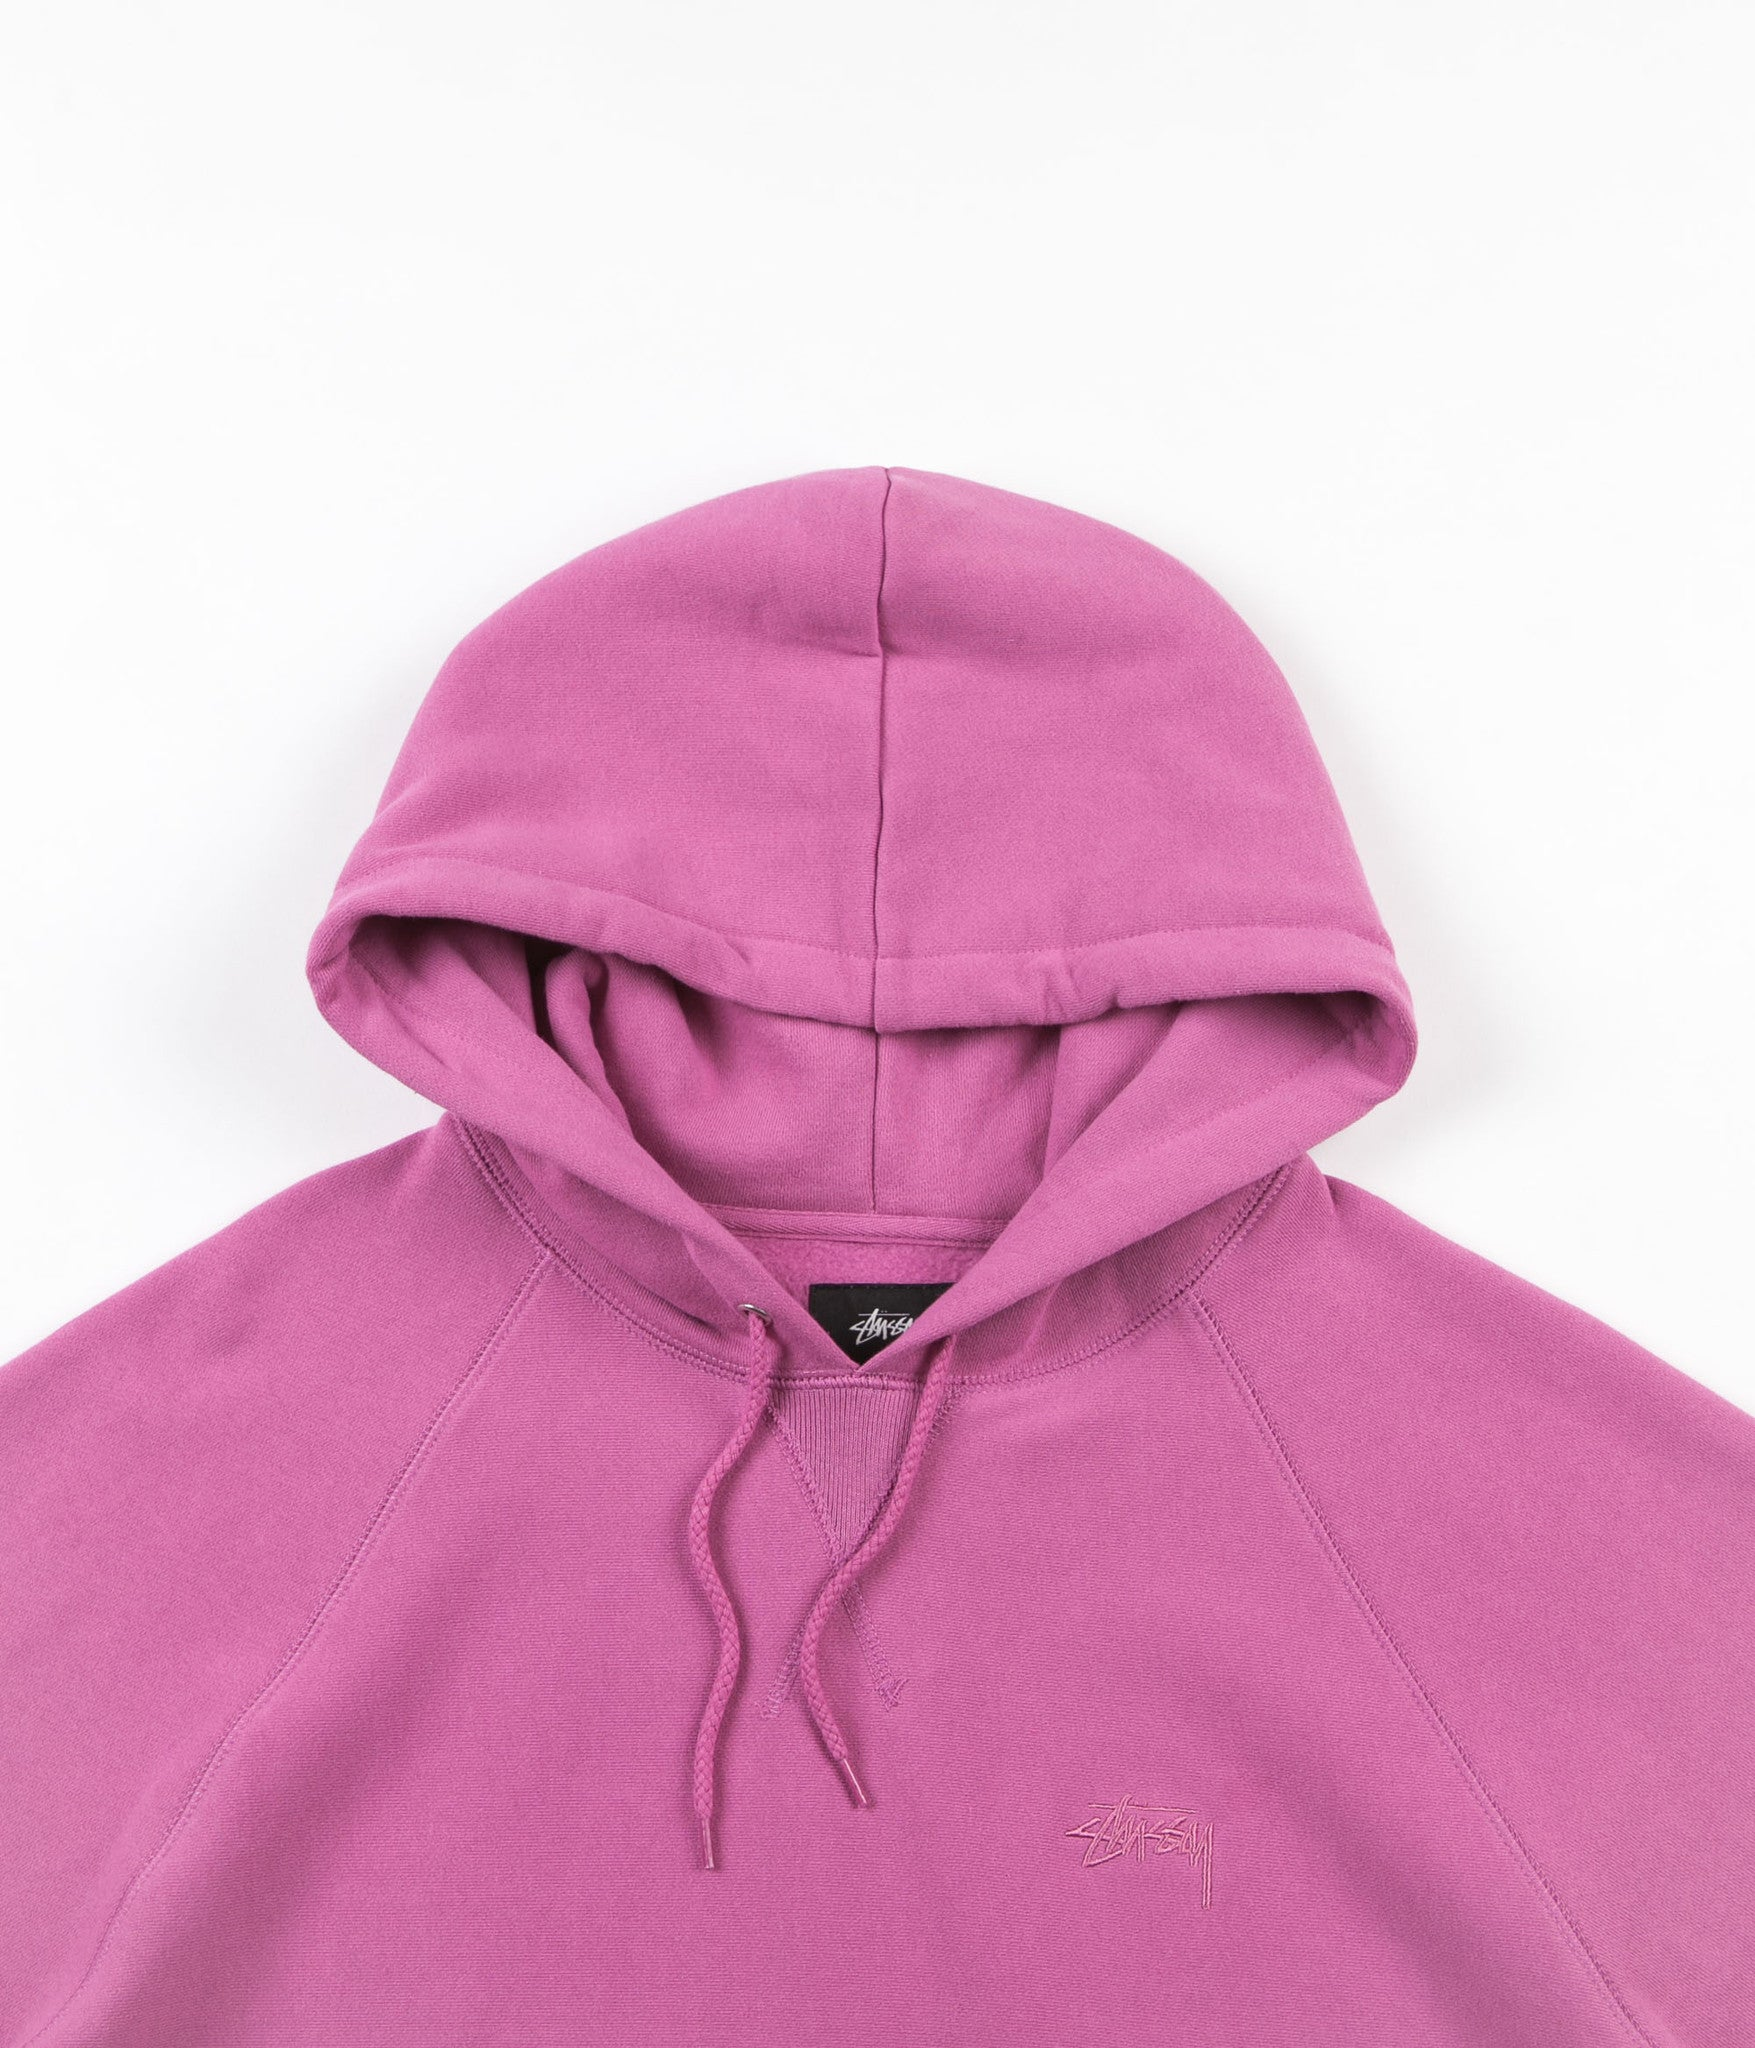 Stussy Stock Raglan Hooded Sweatshirt - Pink